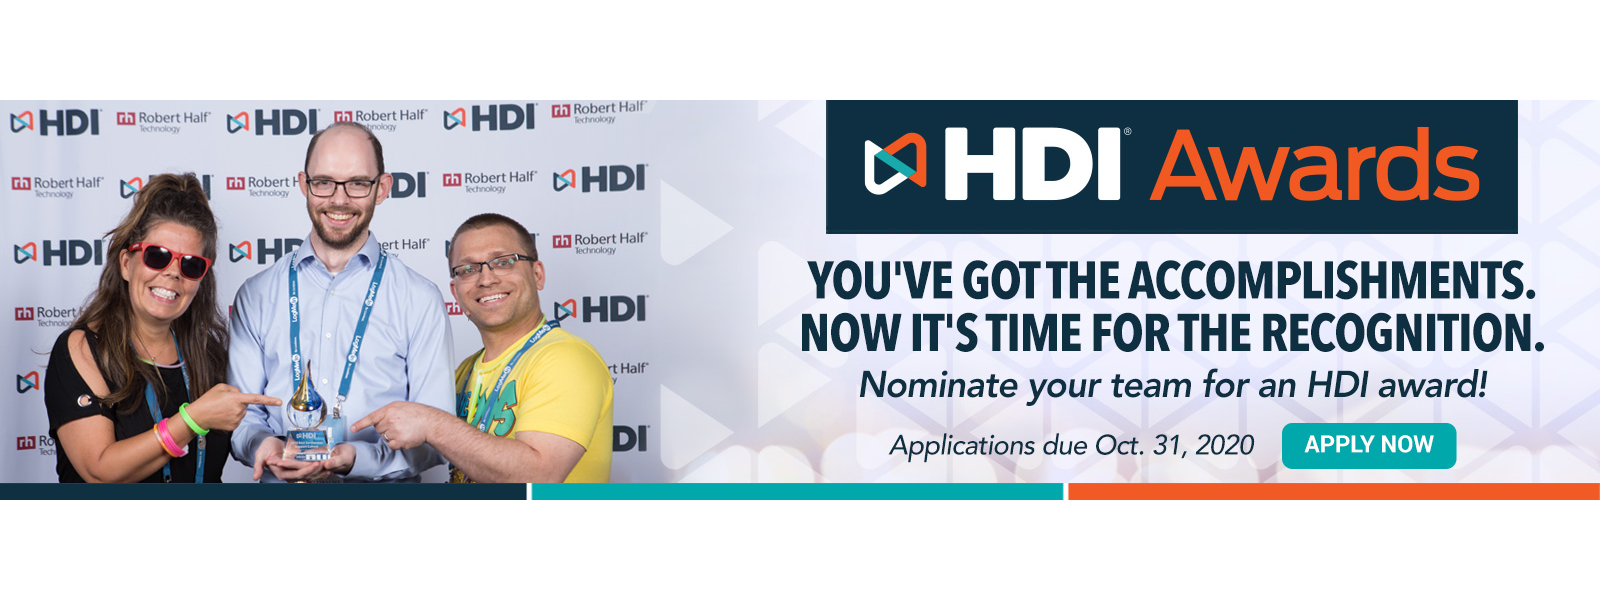 HDI 2020 Award nominations are now open.  Click here for more.